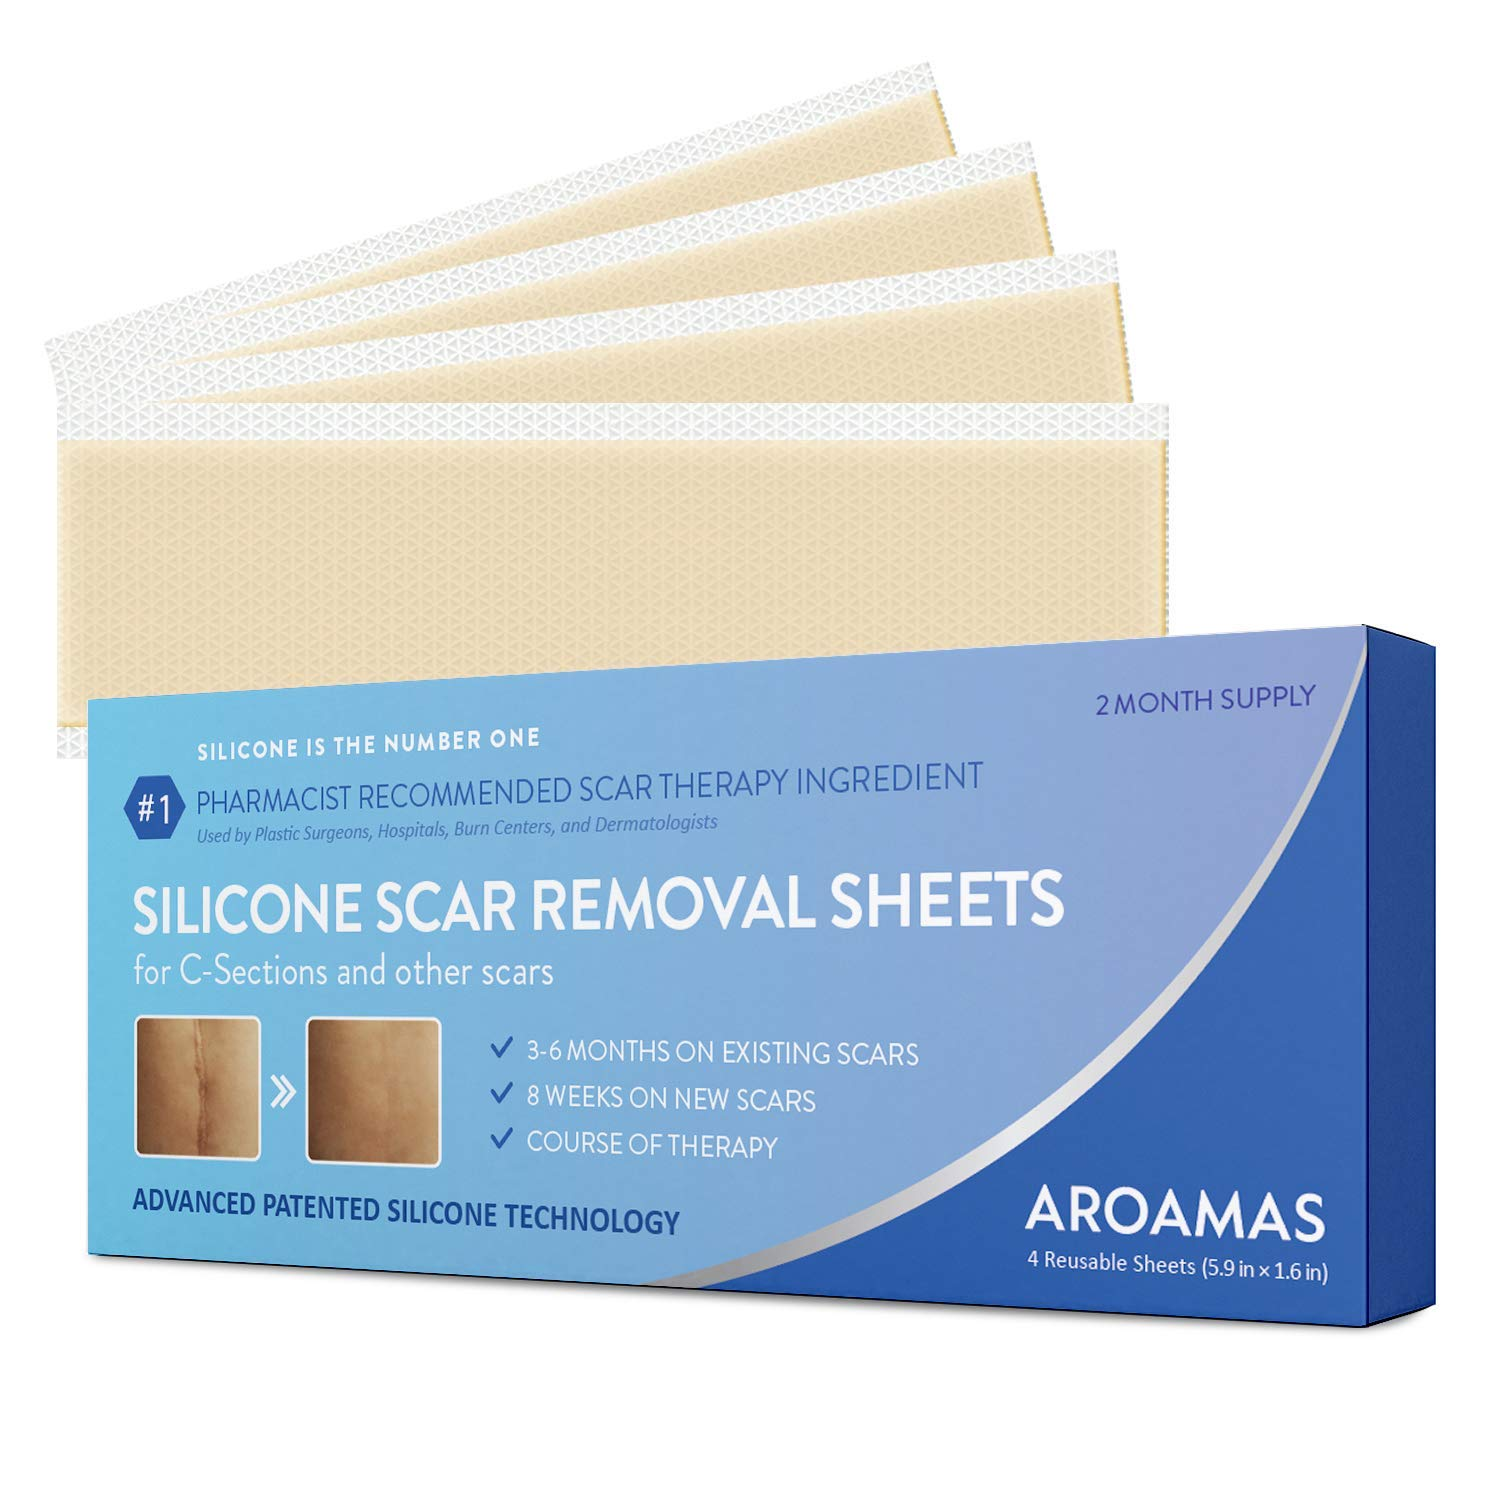 Aroamas Professional Silicone C-Section Scar Removal Sheets, Soft Adhesive Fabric Strips, Drug-Free, Relieves Itching, Remove Keloid Scars, Acne. 5.9'' ✕ 1.6'', 4 pcs (2 Month Supply), Beige by Aroamas